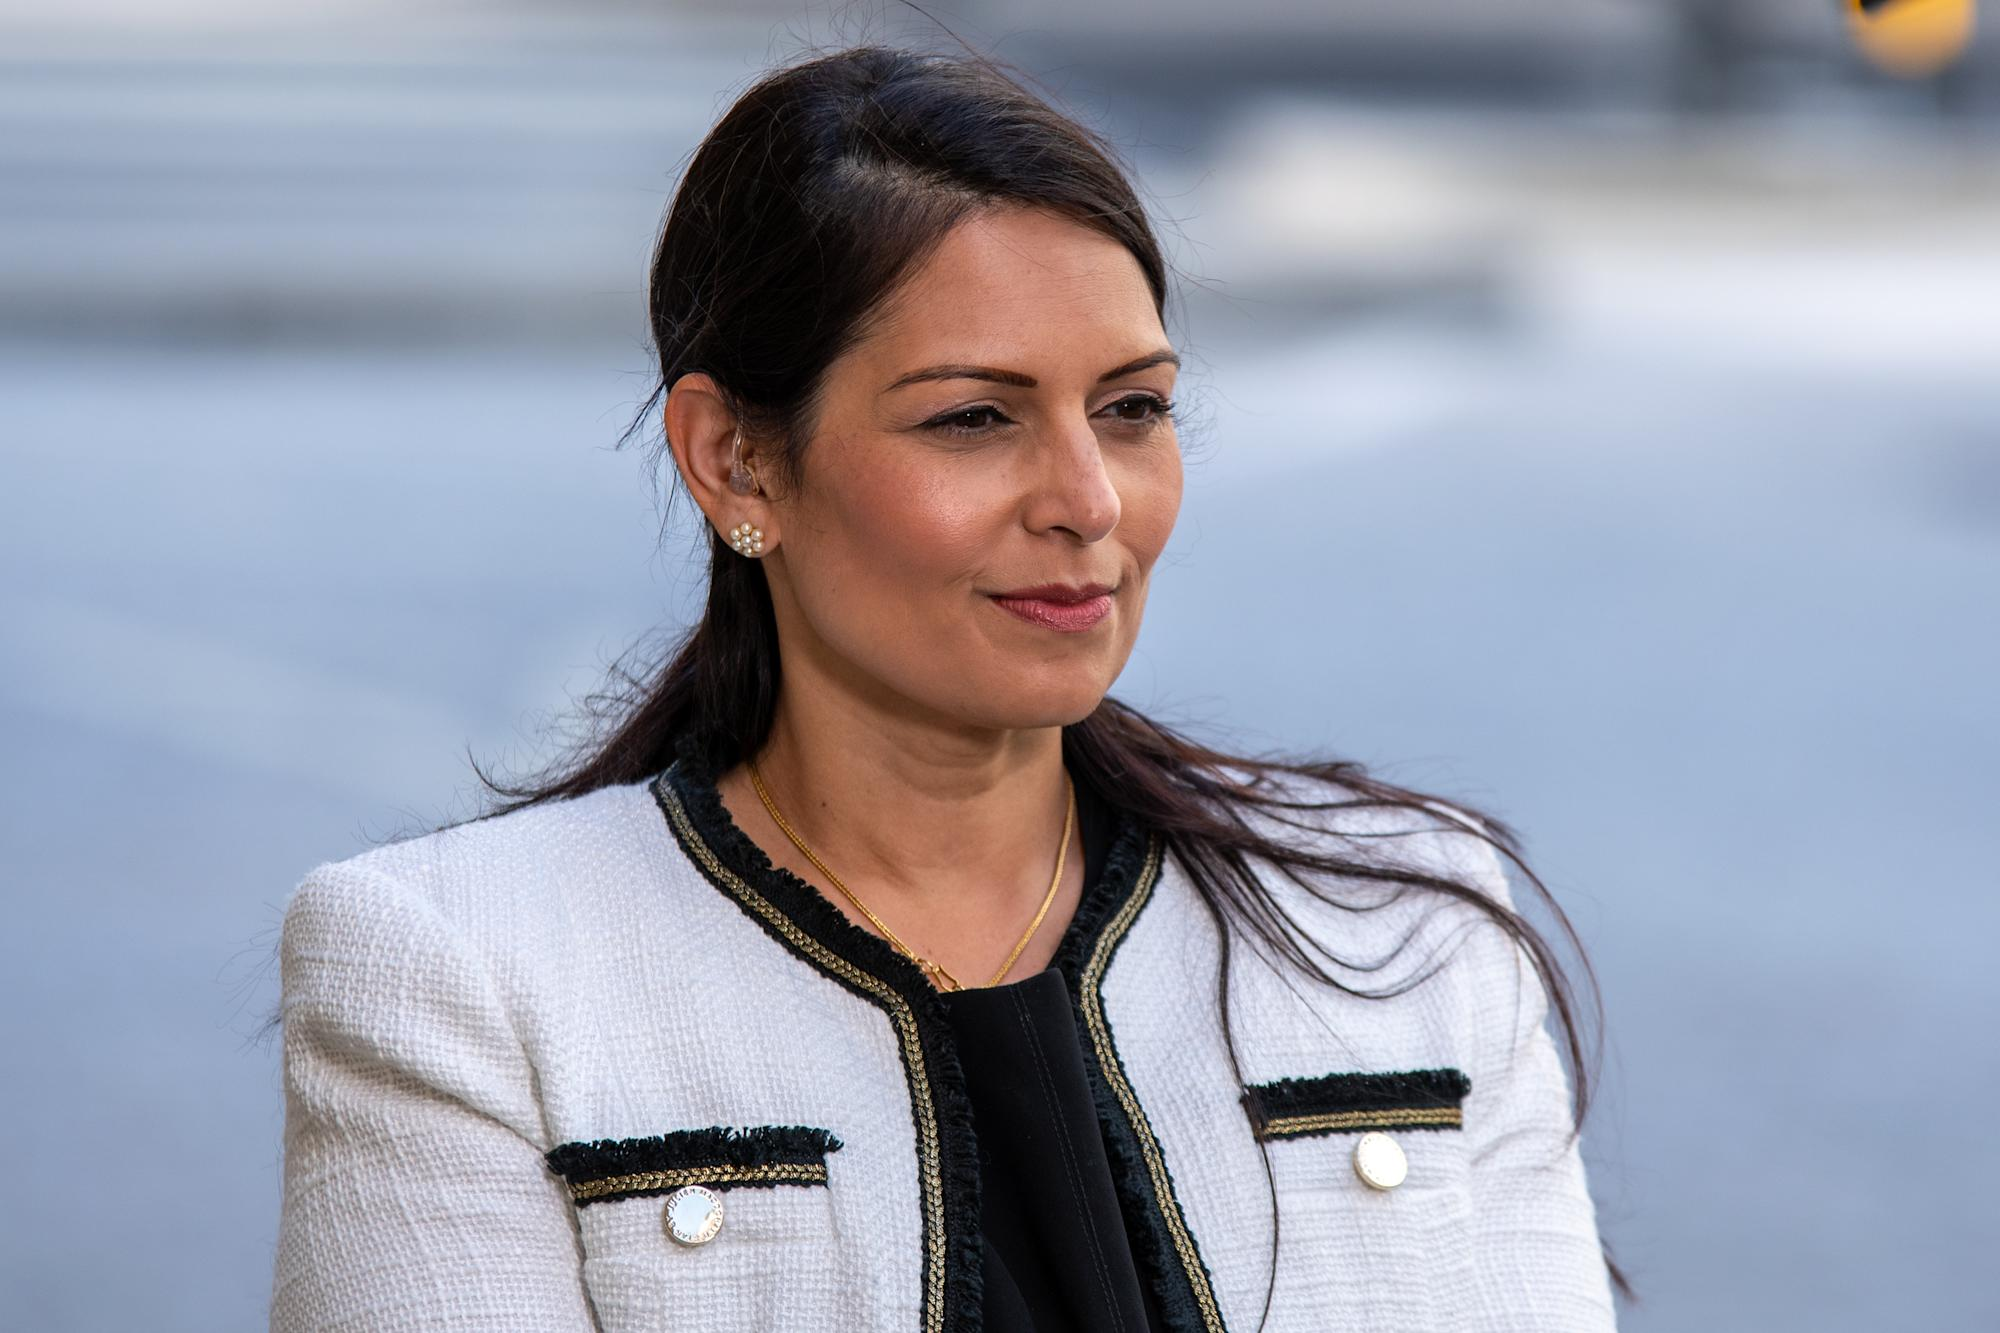 sports.yahoo.com: Priti Patel hits out at Instagram and Twitter for allowing Wiley antisemitic posts